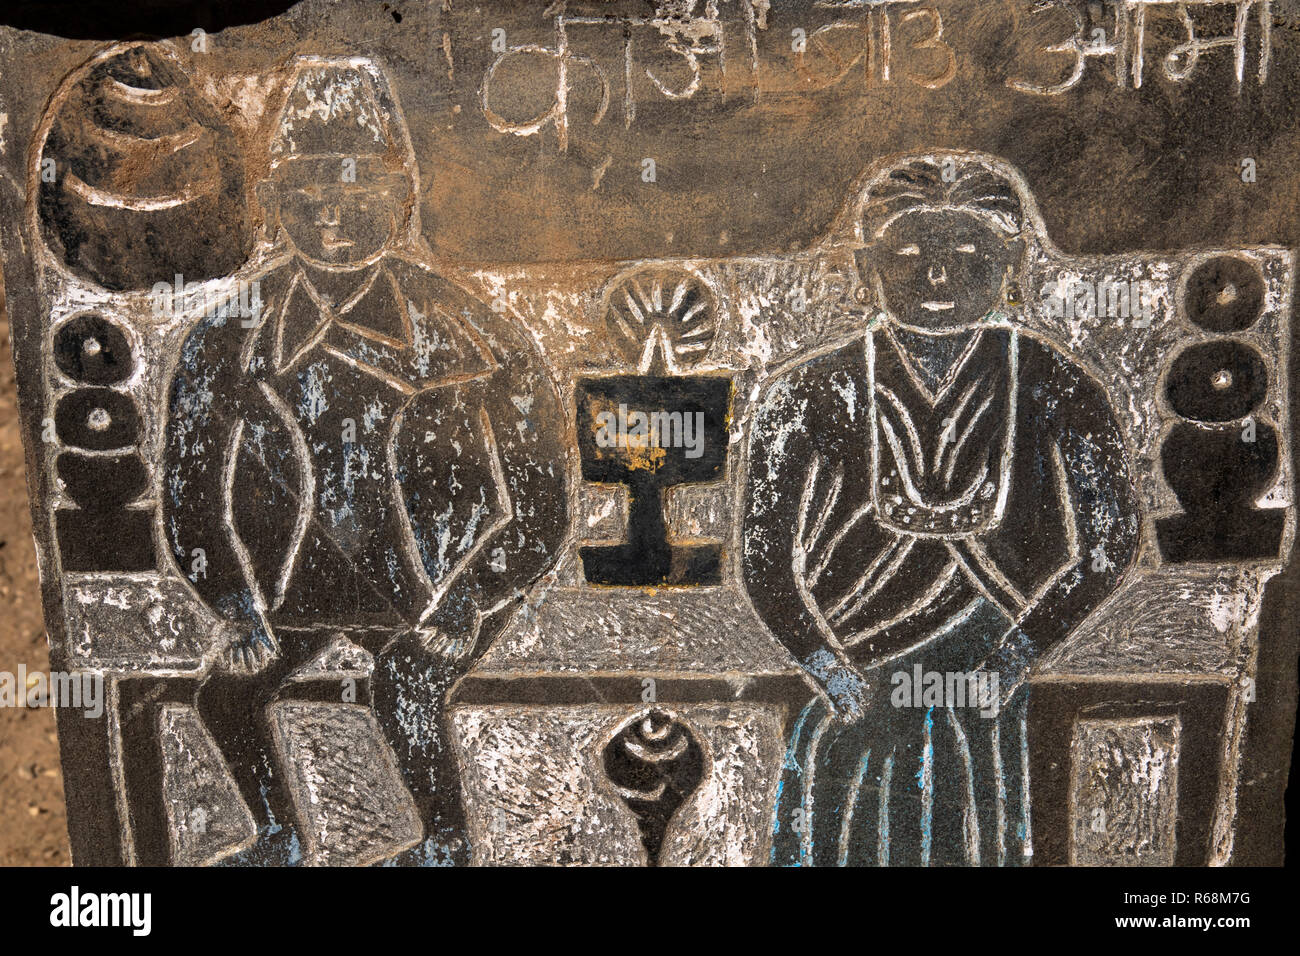 Nepal, Lukla, Lomdza, Buddhist folk art, figures of Nepali man and woman at temple altar carved in slate on Mani Wall - Stock Image